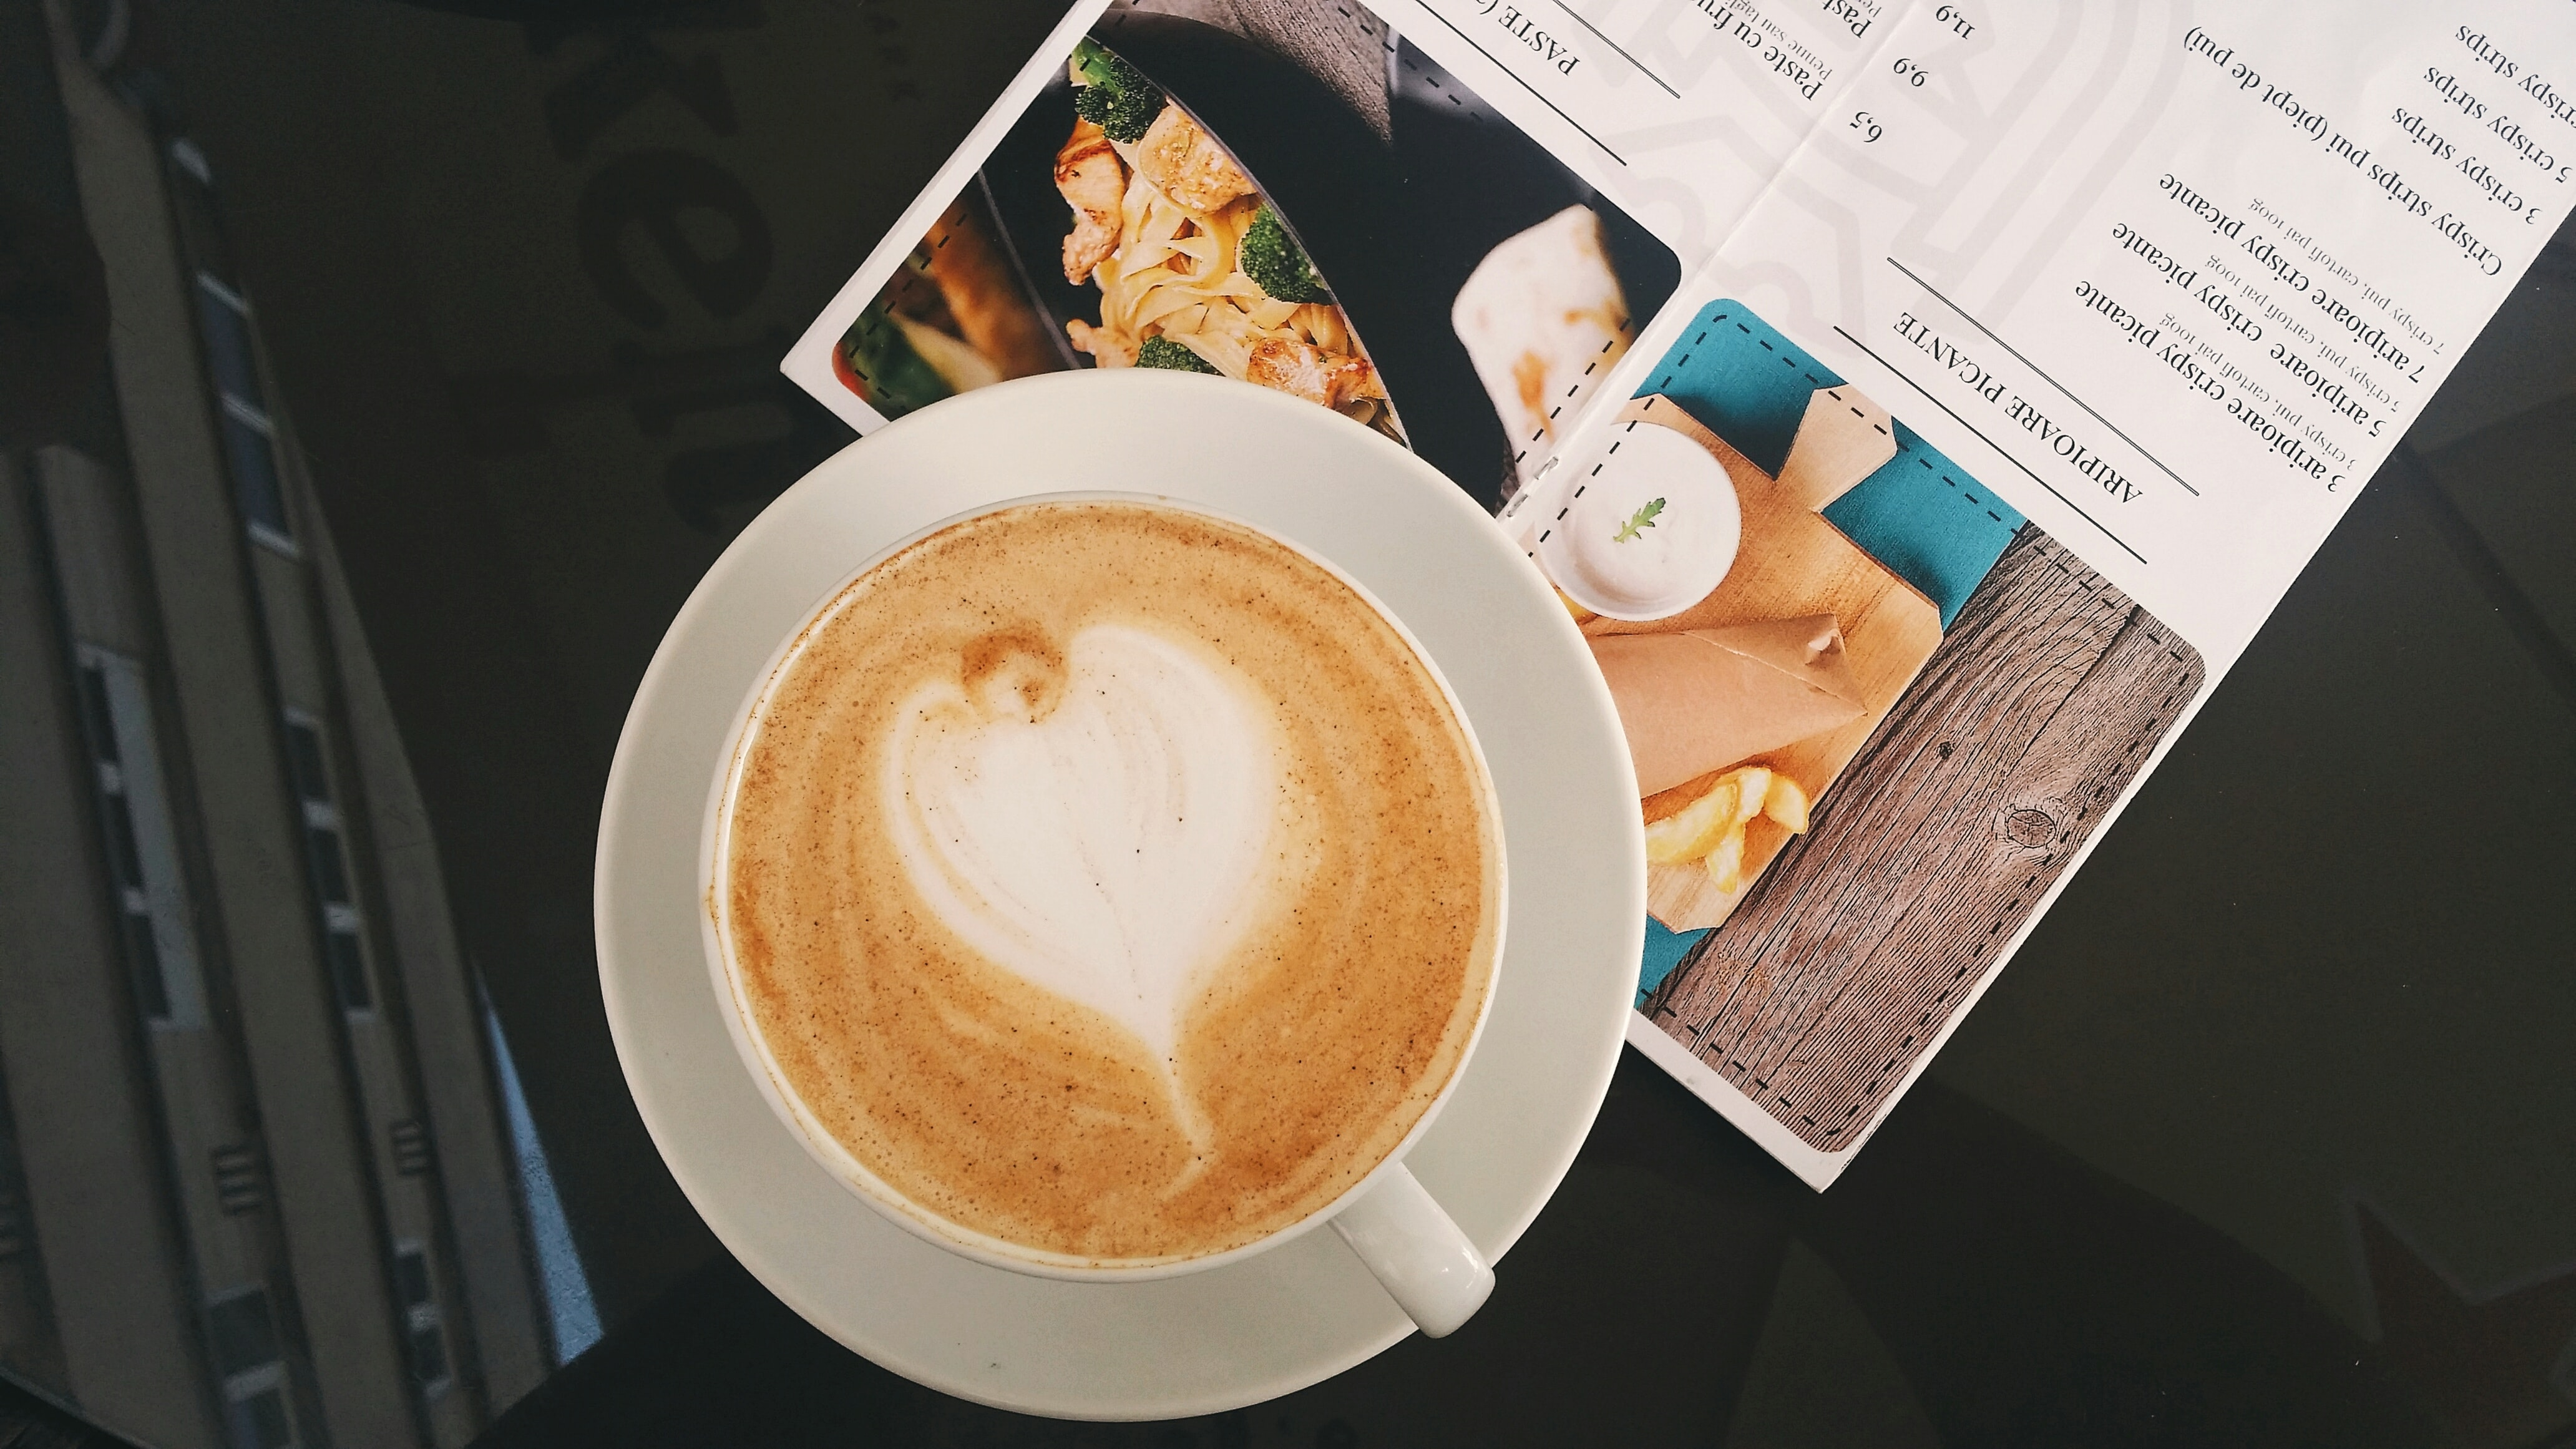 Latte in a white cup and saucer on top of a recipe card on a glass table